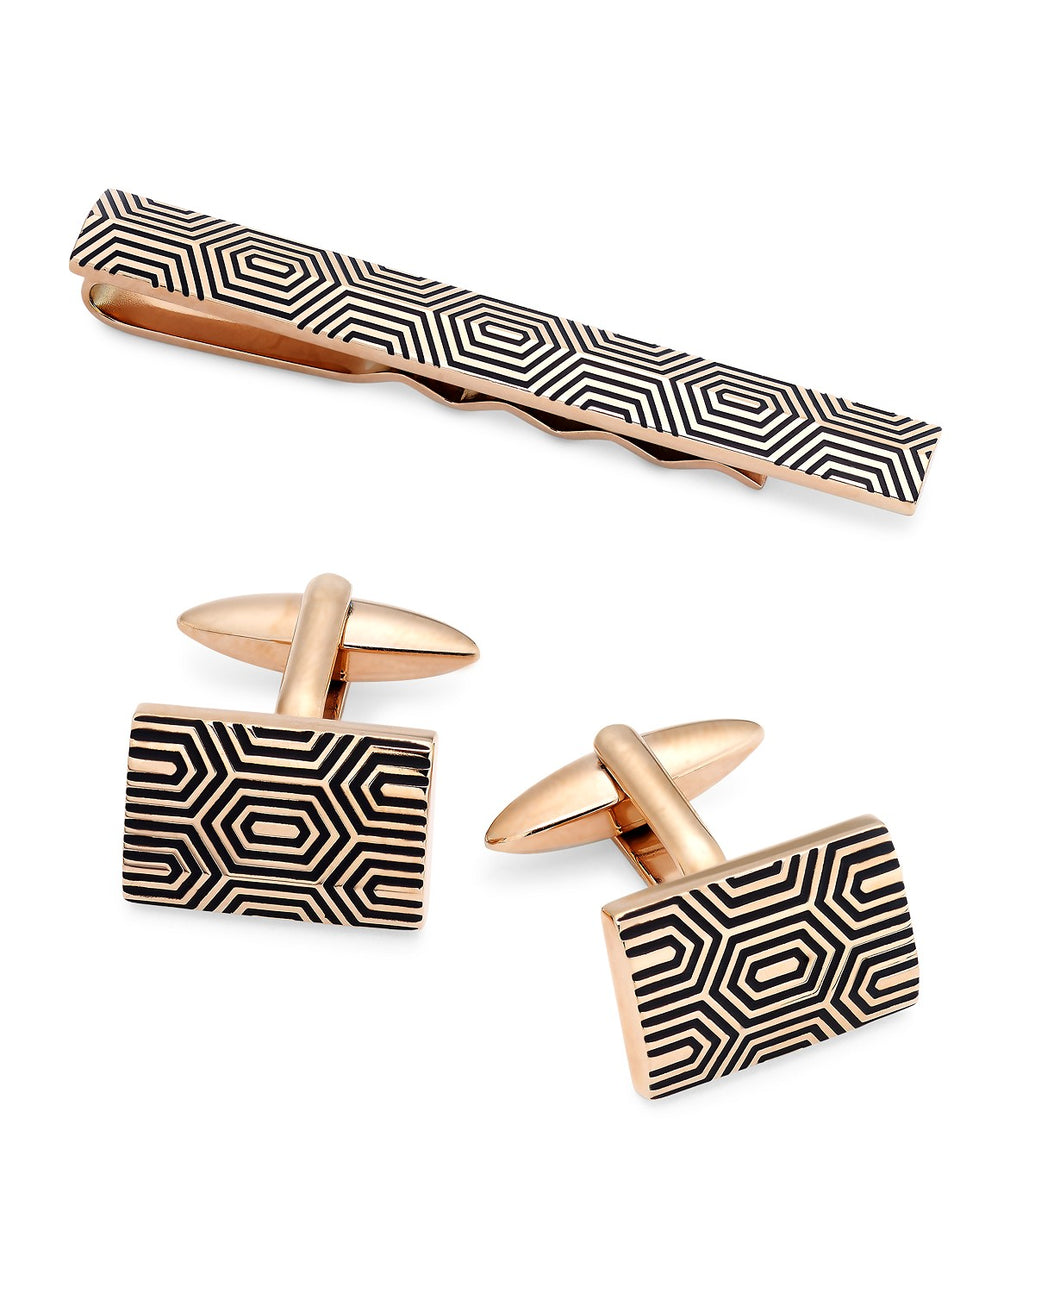 Sutton by Men's Gold-Tone Decorative Cuff Links & Tie Bar Set